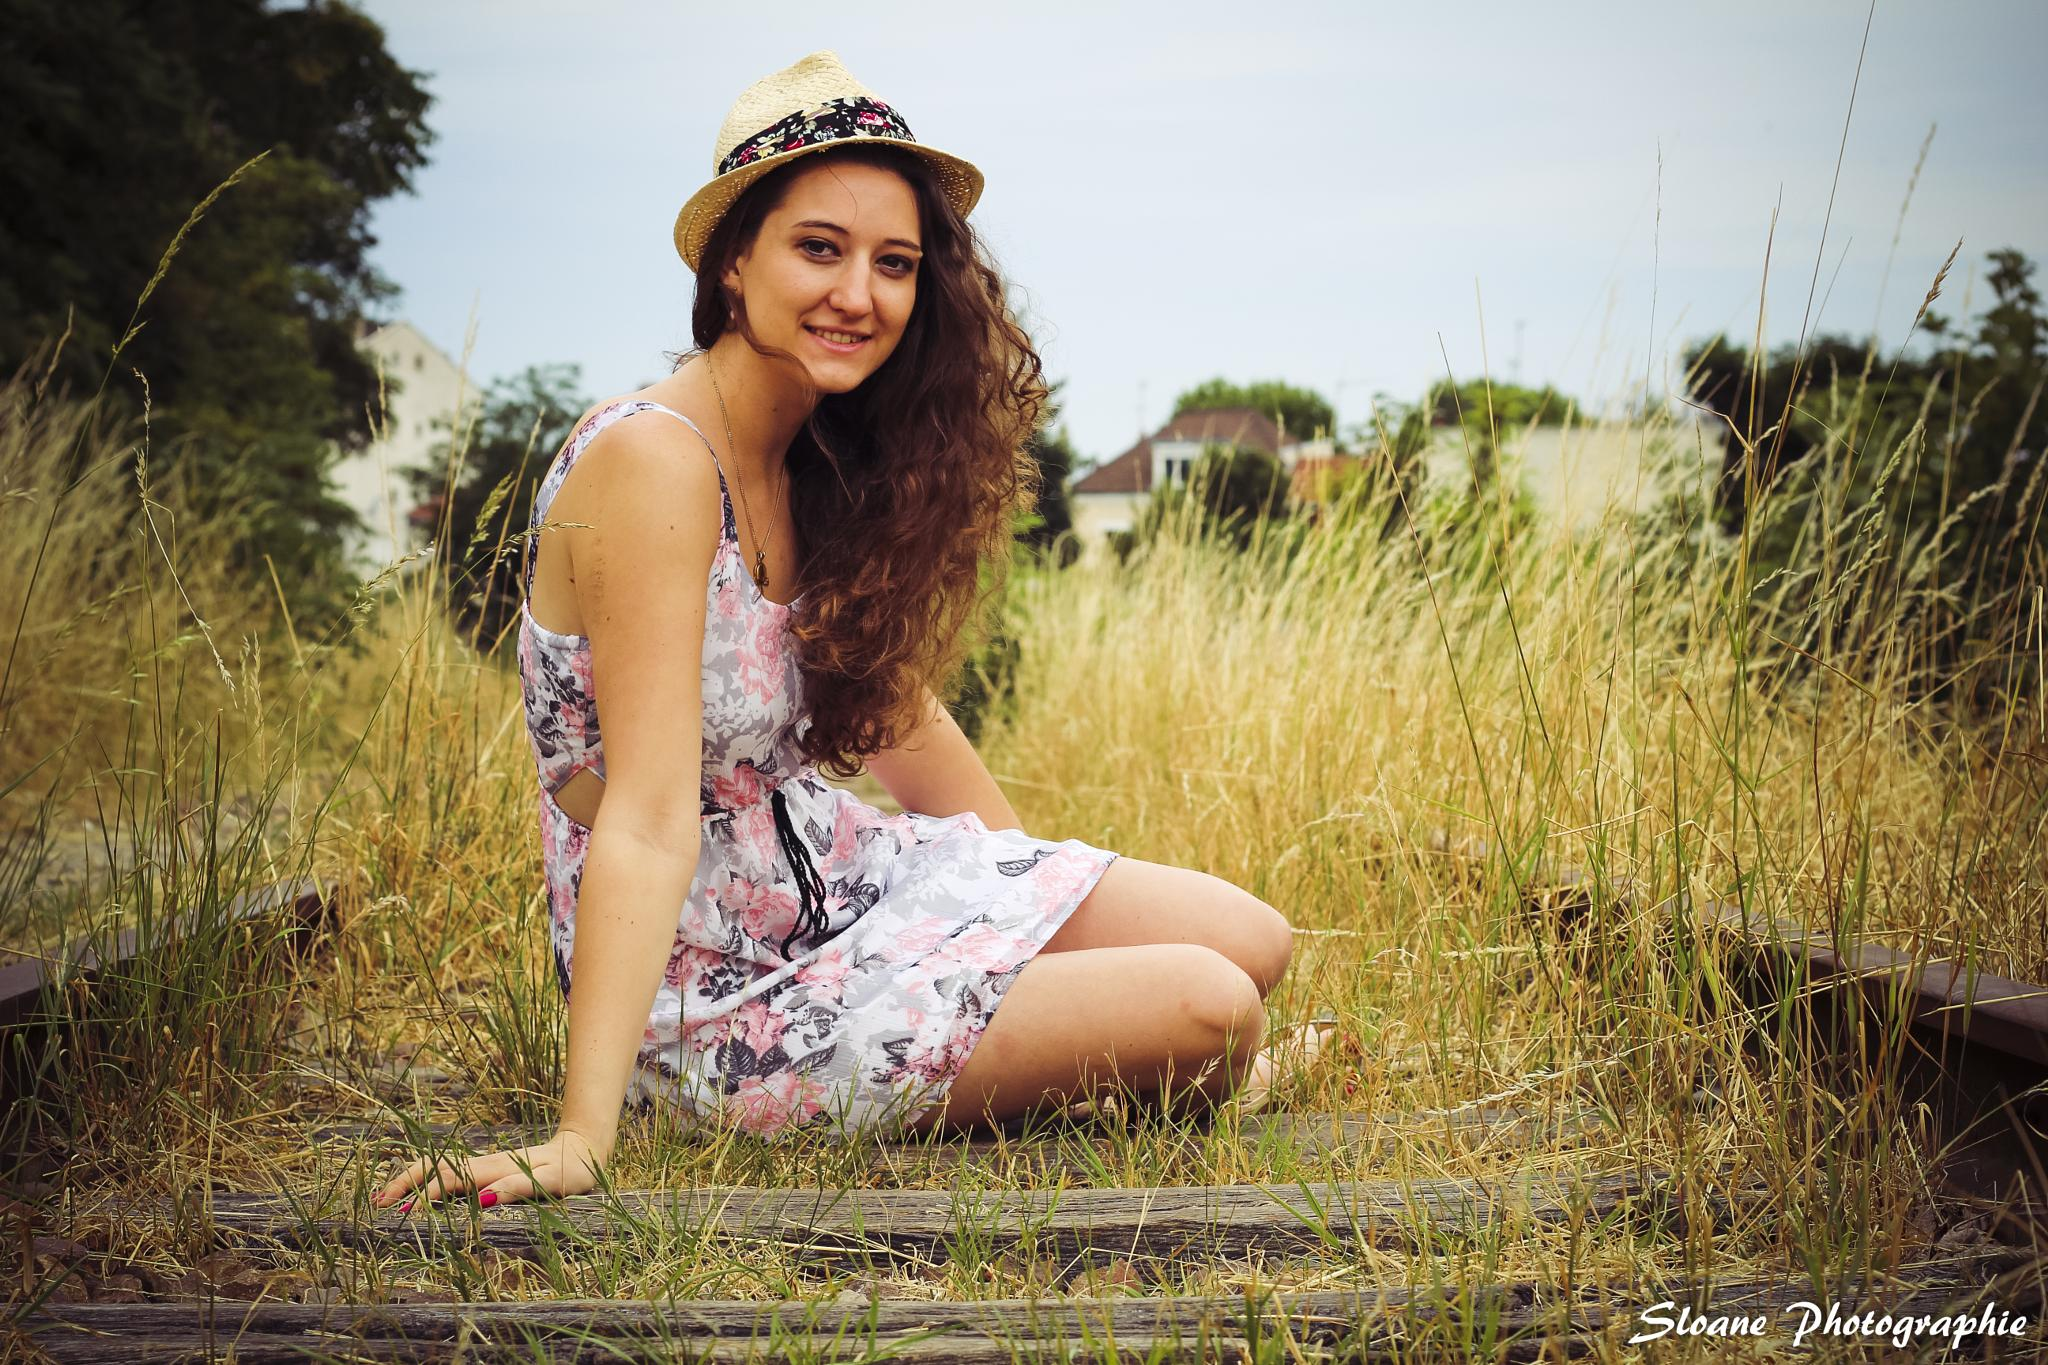 Julie by Sloane Photographie